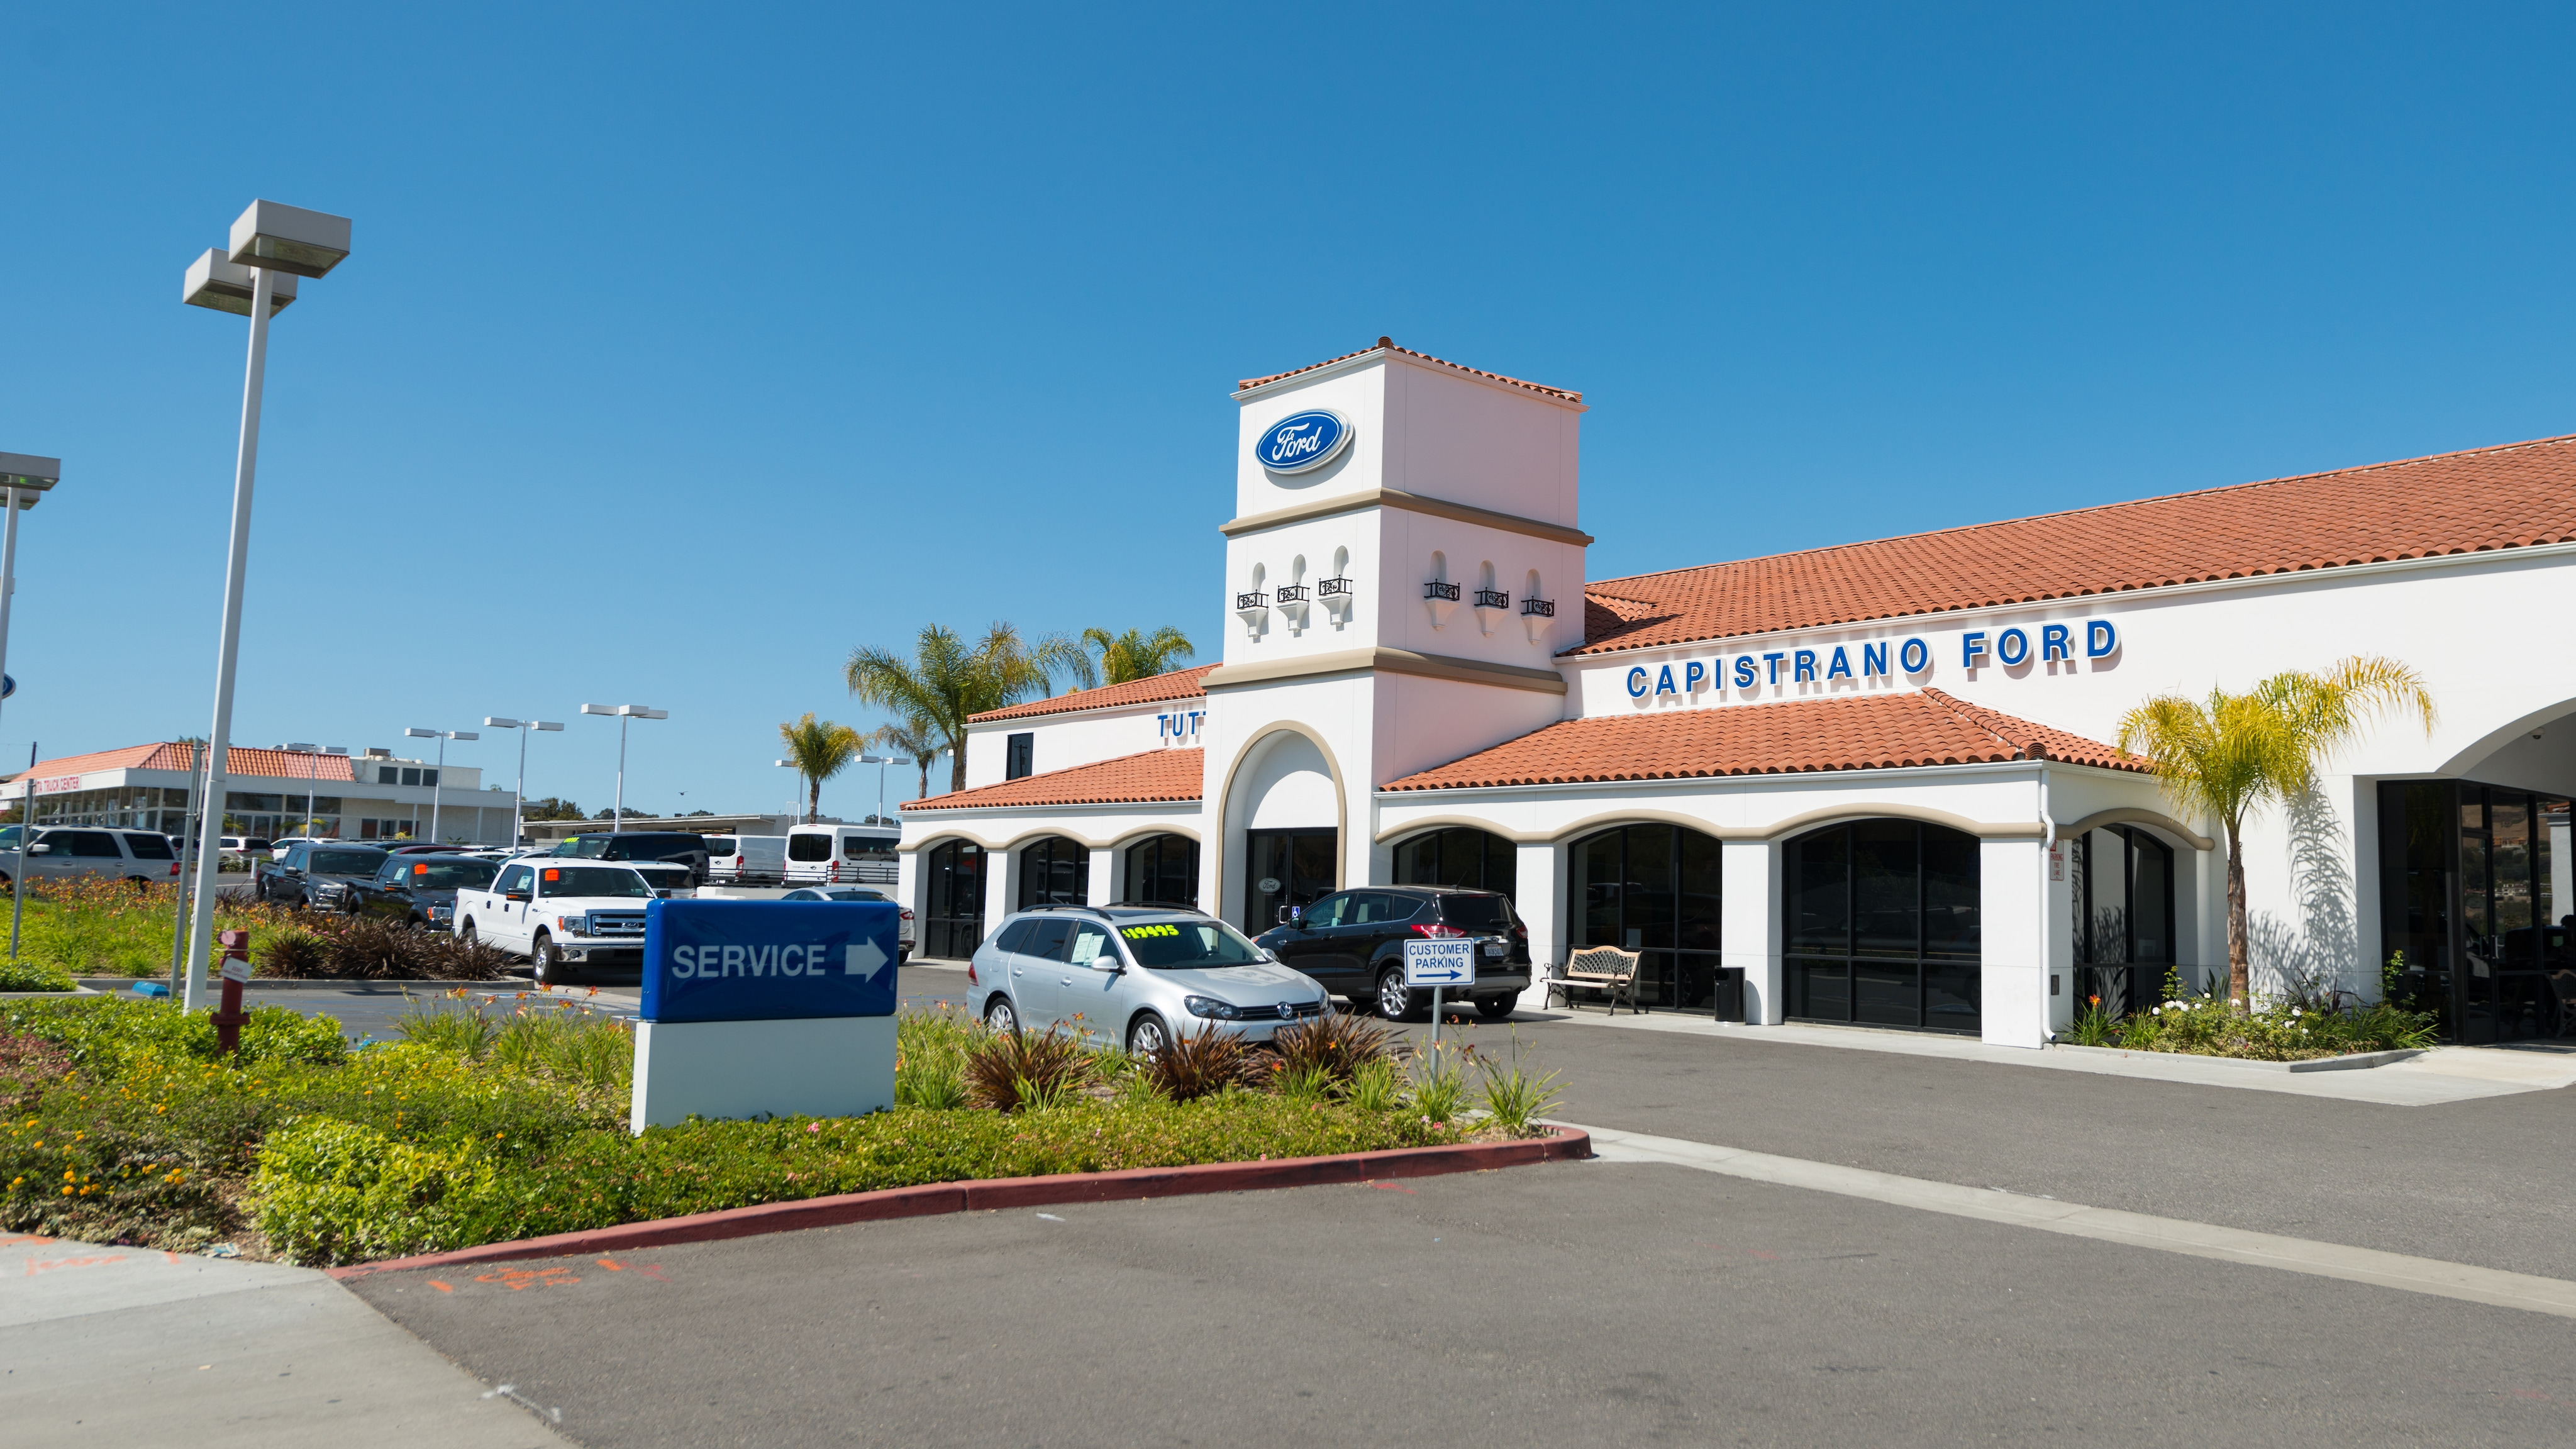 About Tuttle s Capistrano Ford